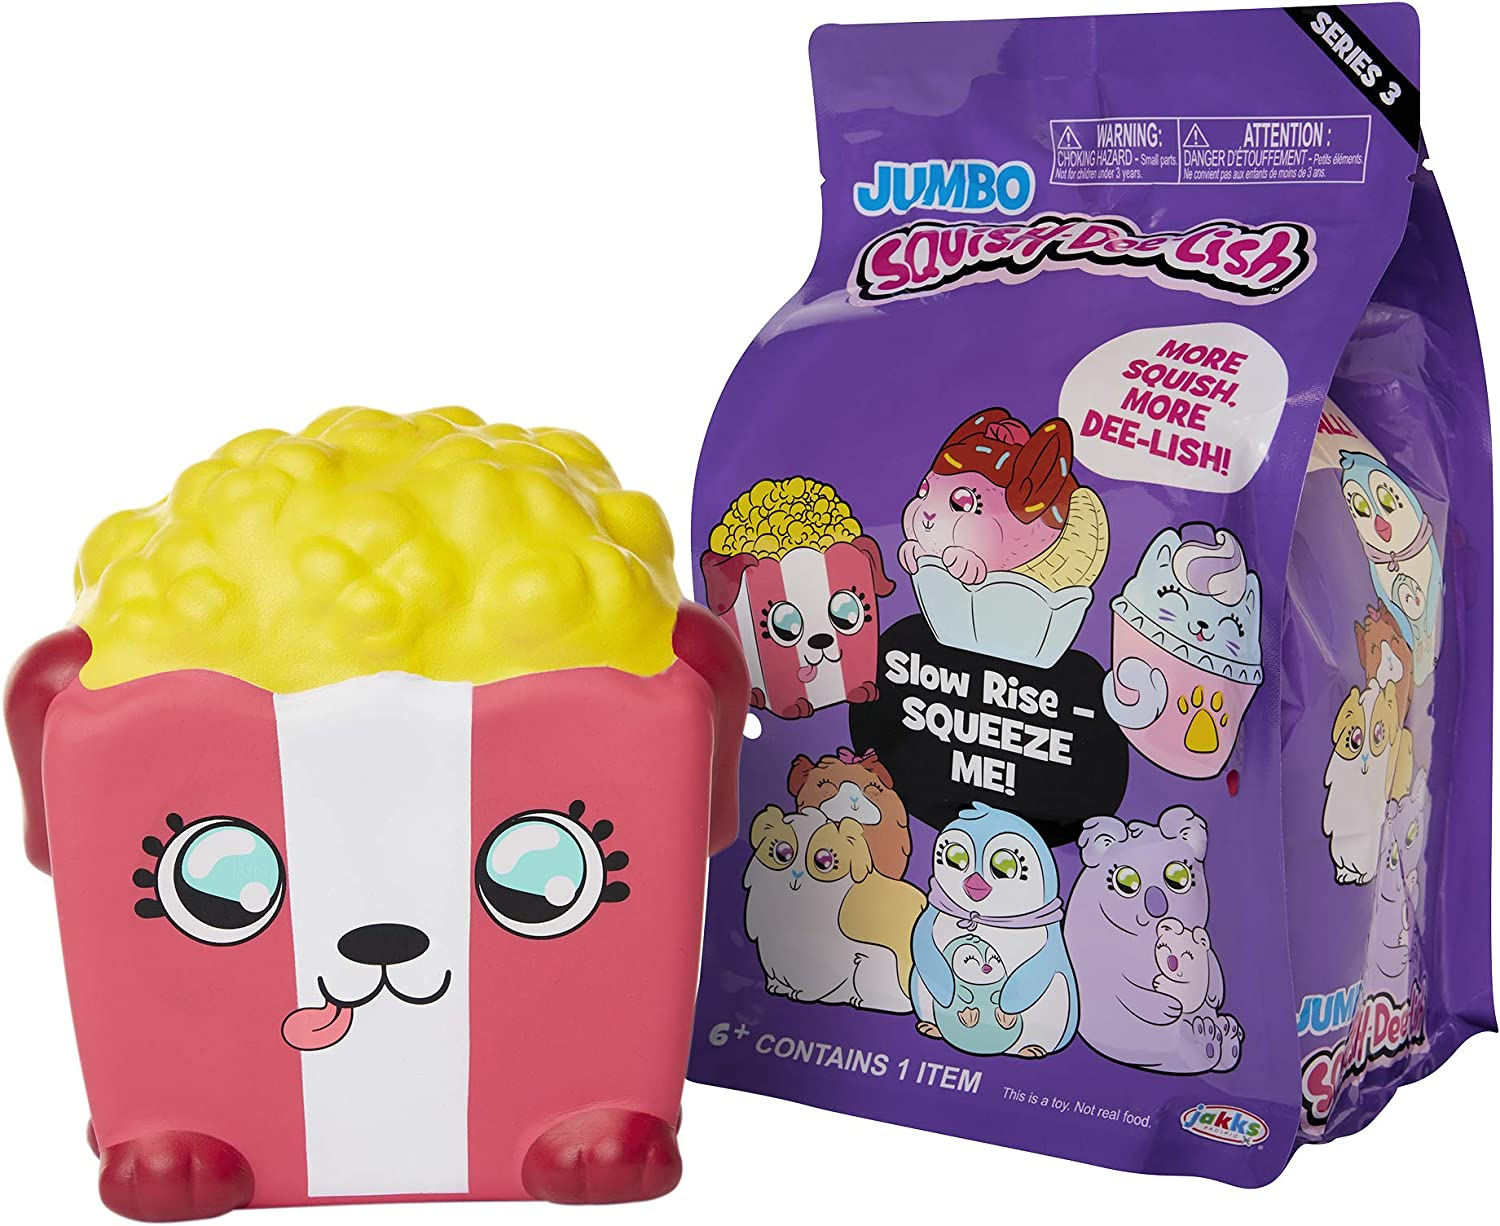 Squish-Dee-Lish Squishy Jumbo Toy, Squishies - Slow Rising Pup-Corn, Soft Kids Squishy Toys 86715